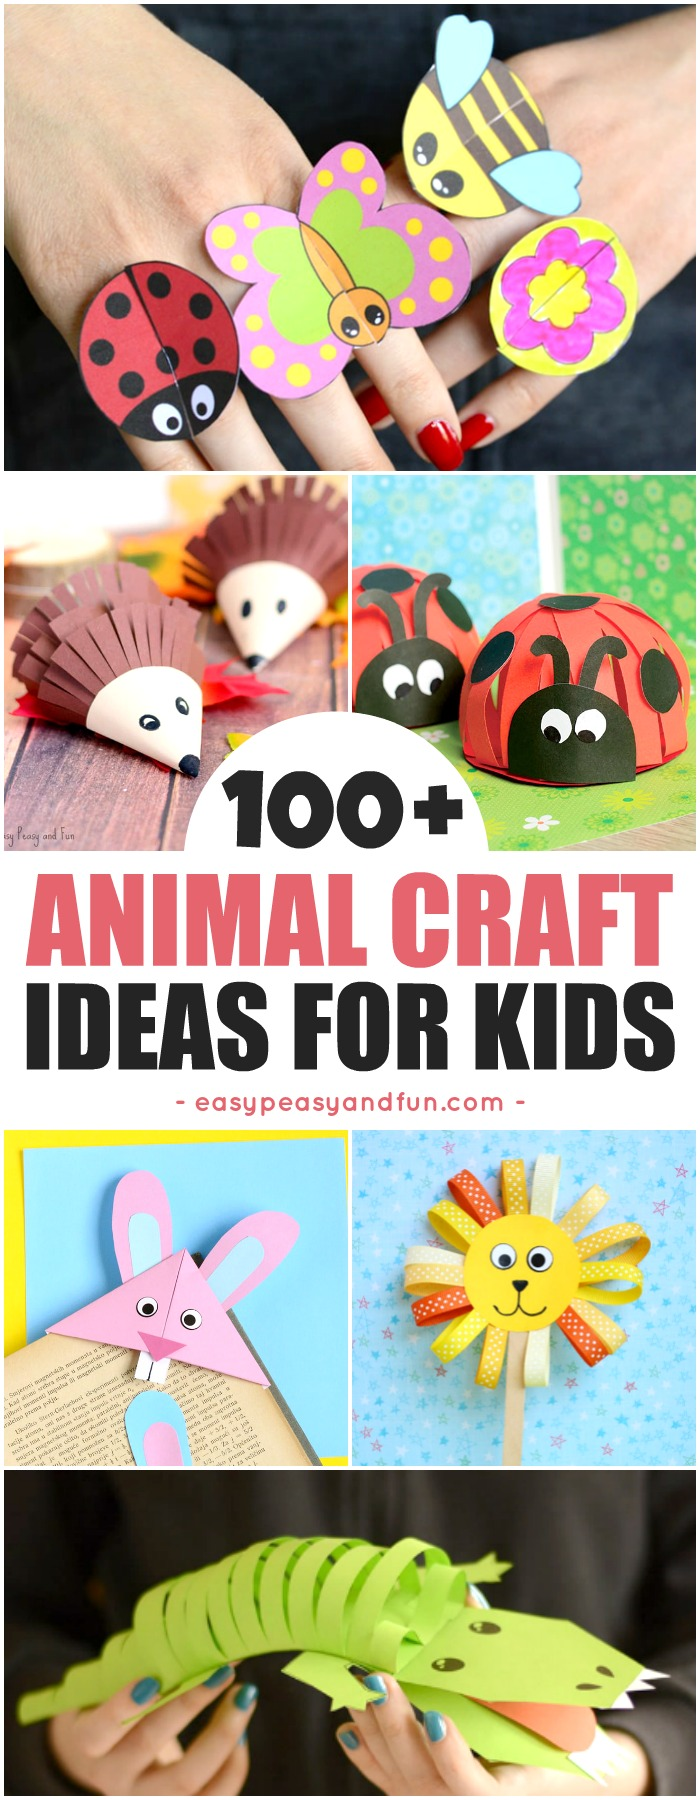 Super Fun Animal Crafts for Kids. Fun crafting ideas from bugs, zoo animals, farm animals, ocean animals and more. Perfect art and crafts for home or classroom #craftsforkids #preschool #kindergarten